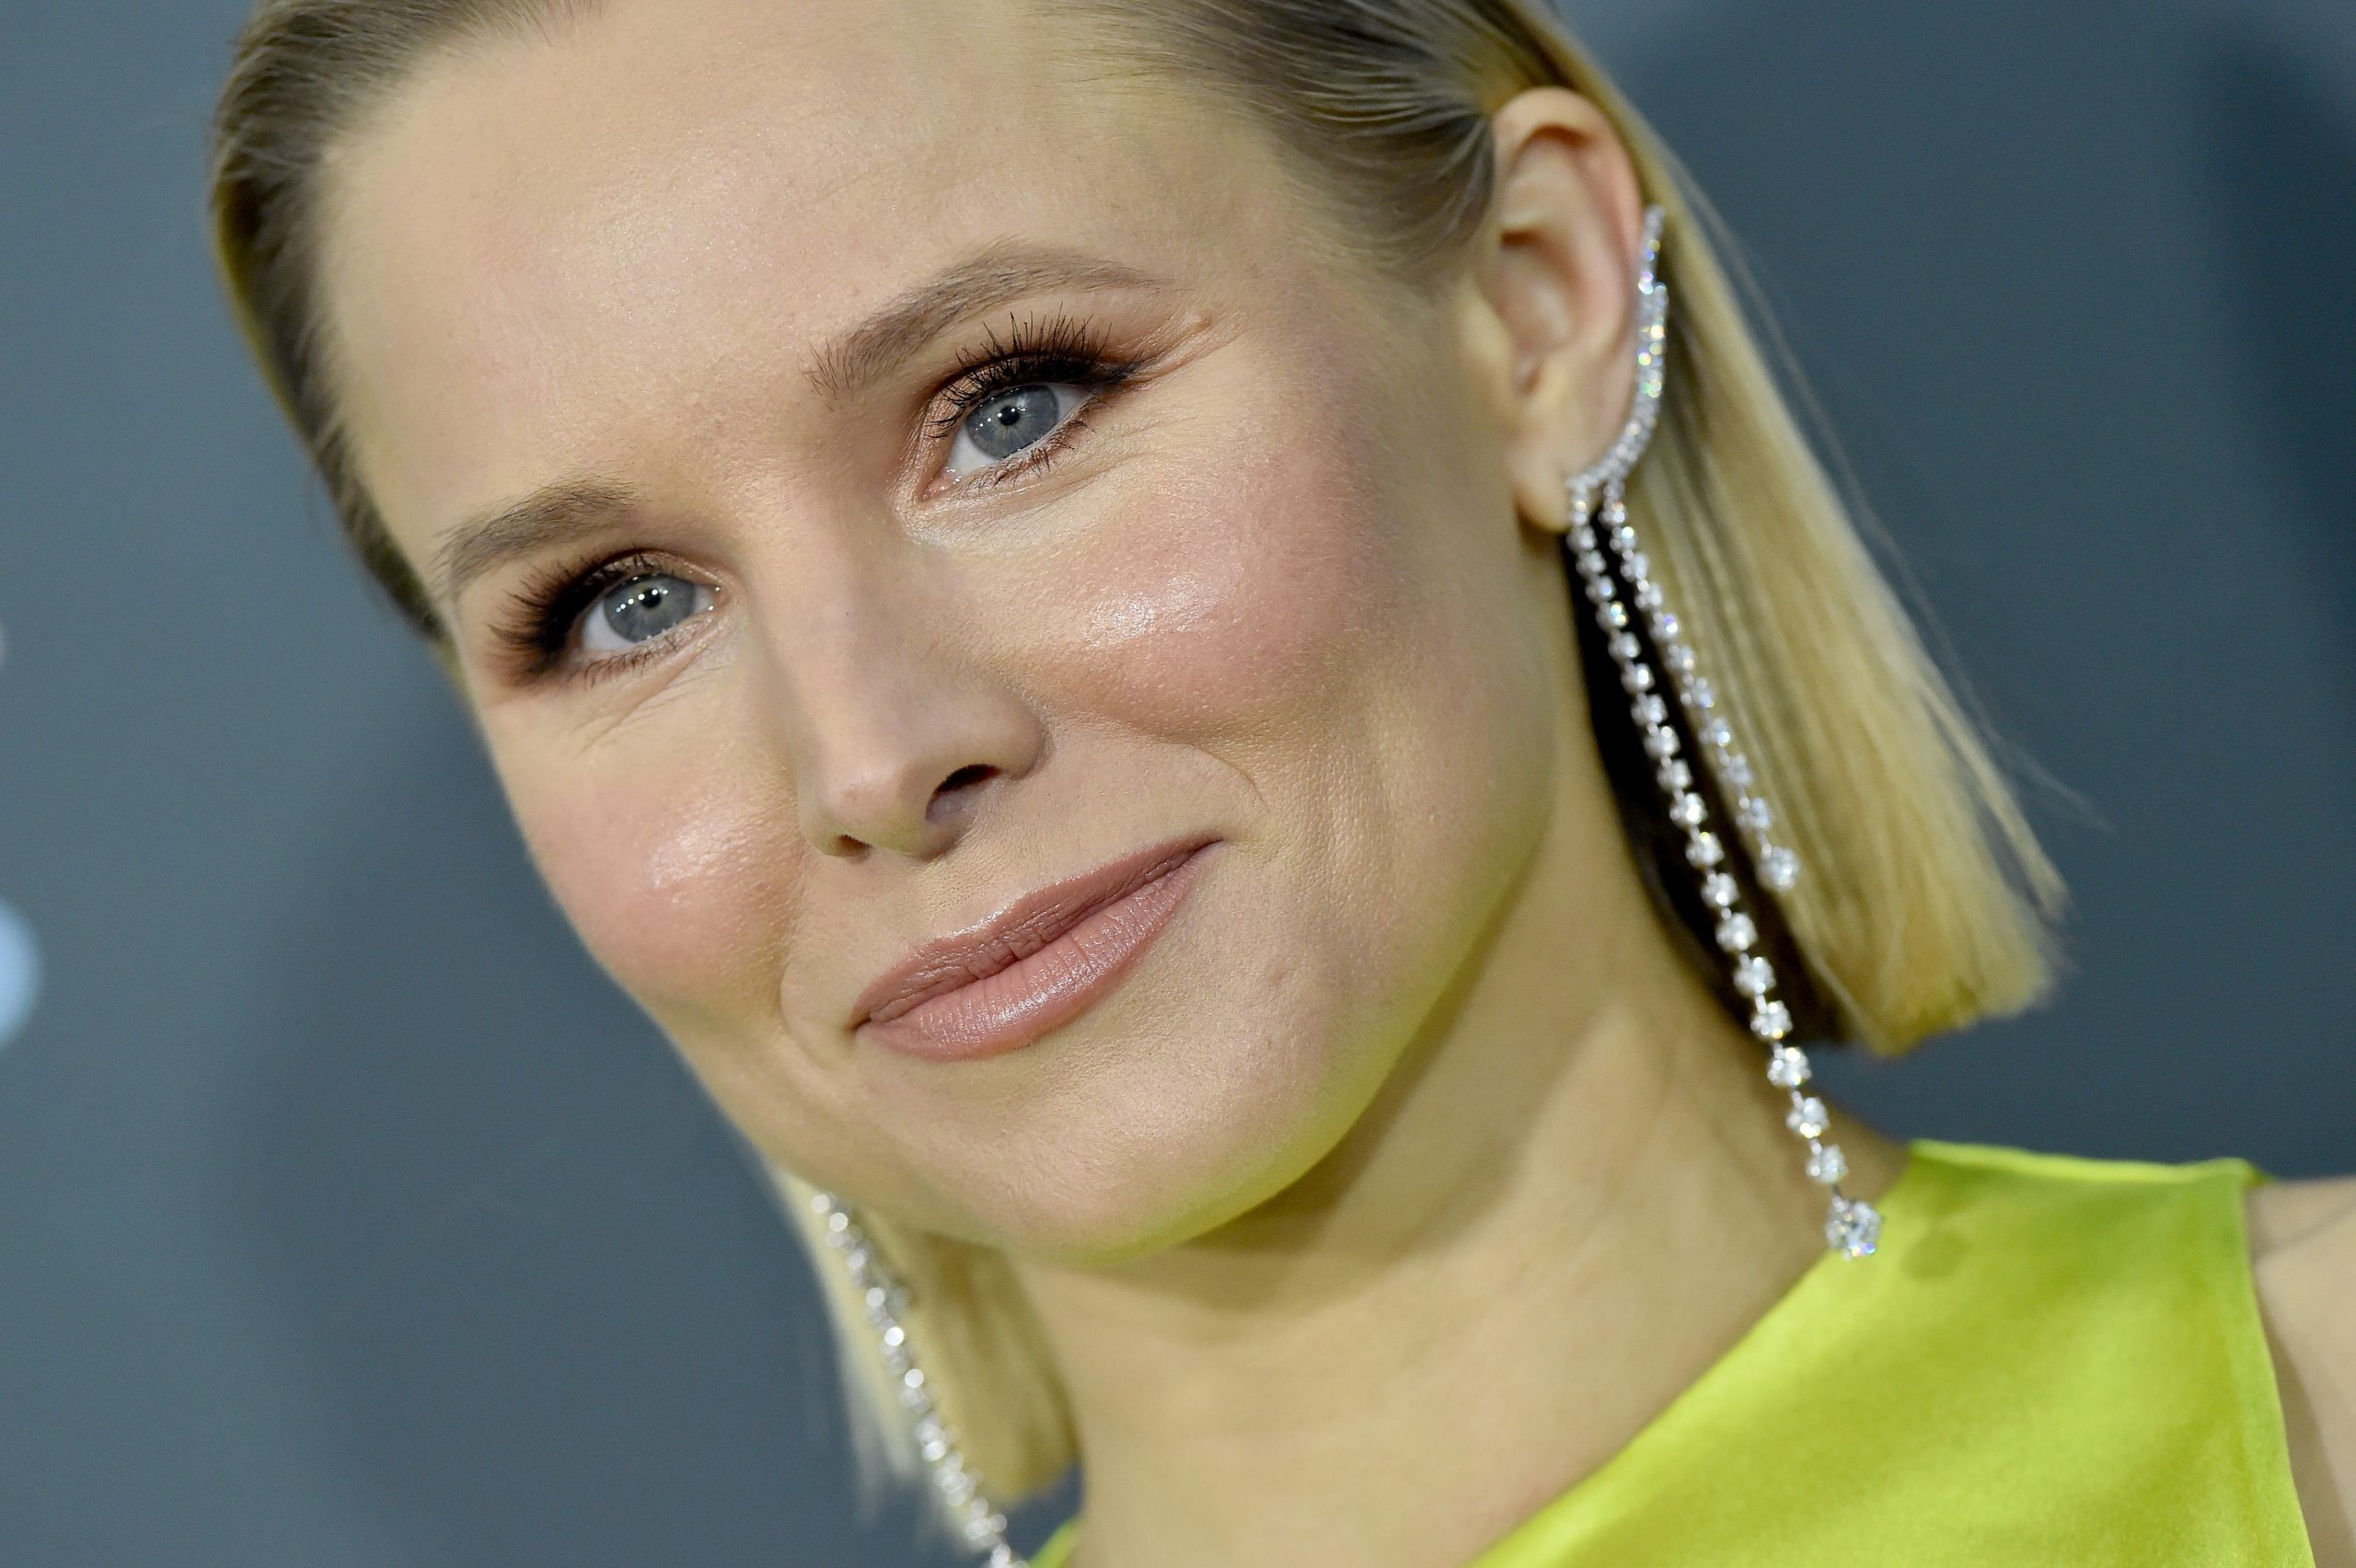 SANTA MONICA, CALIFORNIA - JANUARY 12: Kristen Bell attends the 25th Annual Critics' Choice Awards at Barker Hangar on January 12, 2020 in Santa Monica, California. (Photo by Axelle/Bauer-Griffin/FilmMagic)